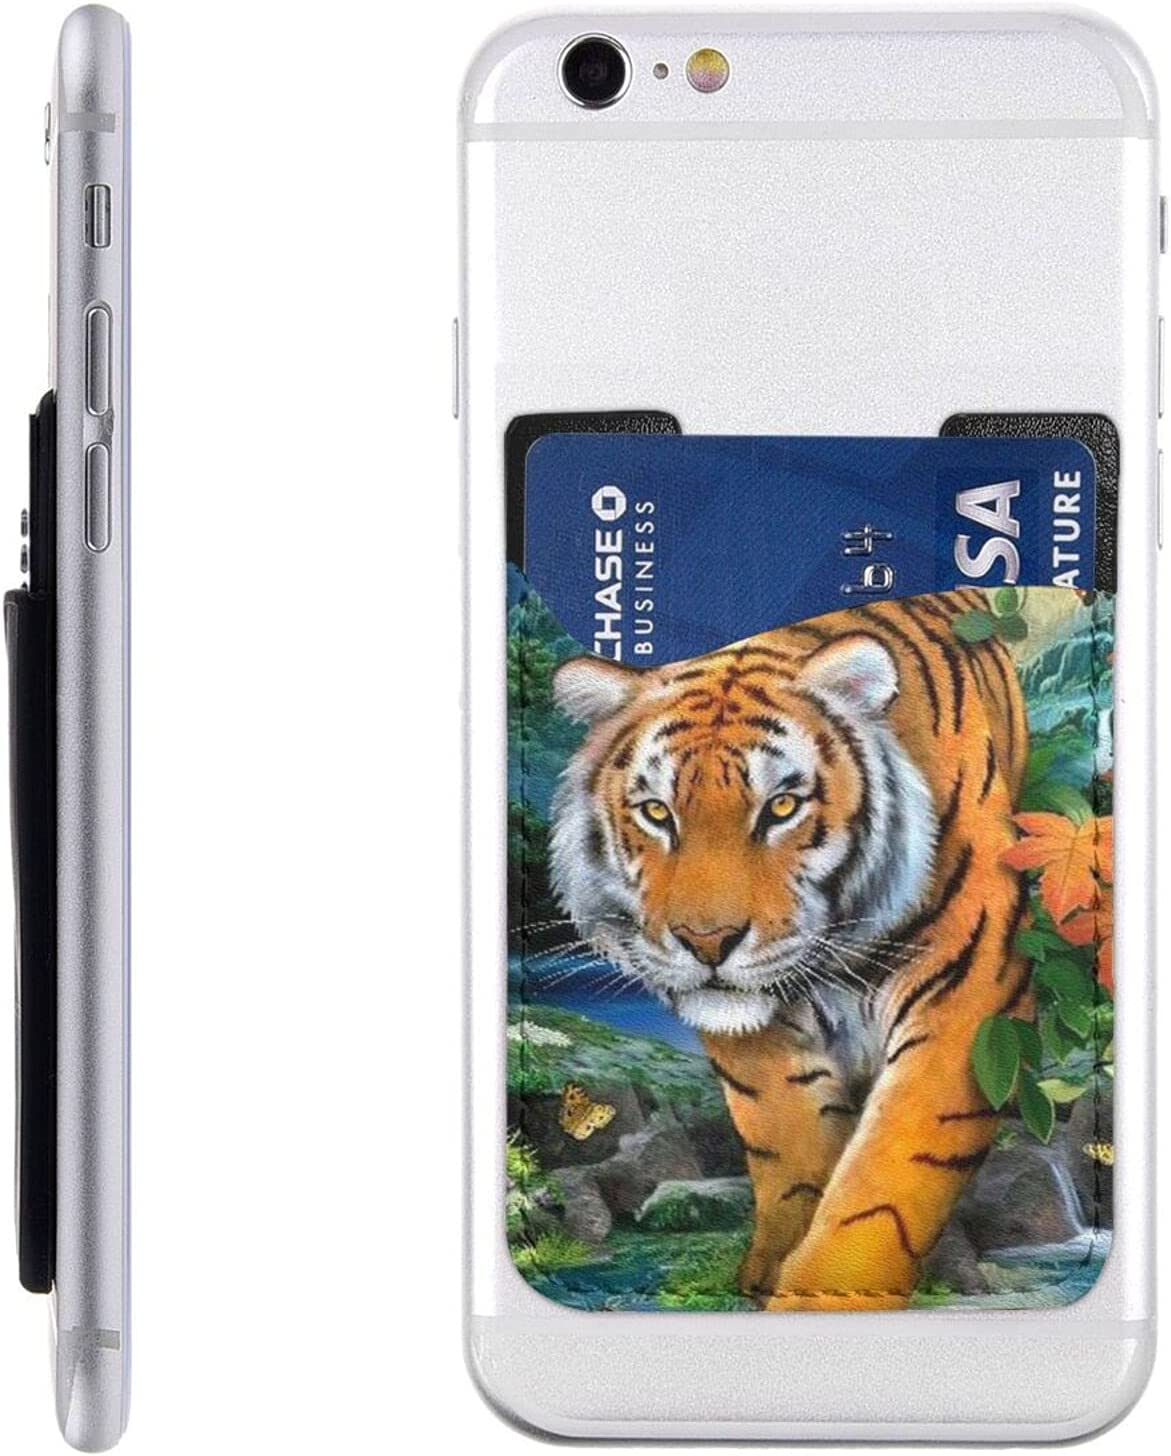 Tiger Phone Card Elegant Holder Cell M Wallet Sleeve Stick NEW before selling ☆ On